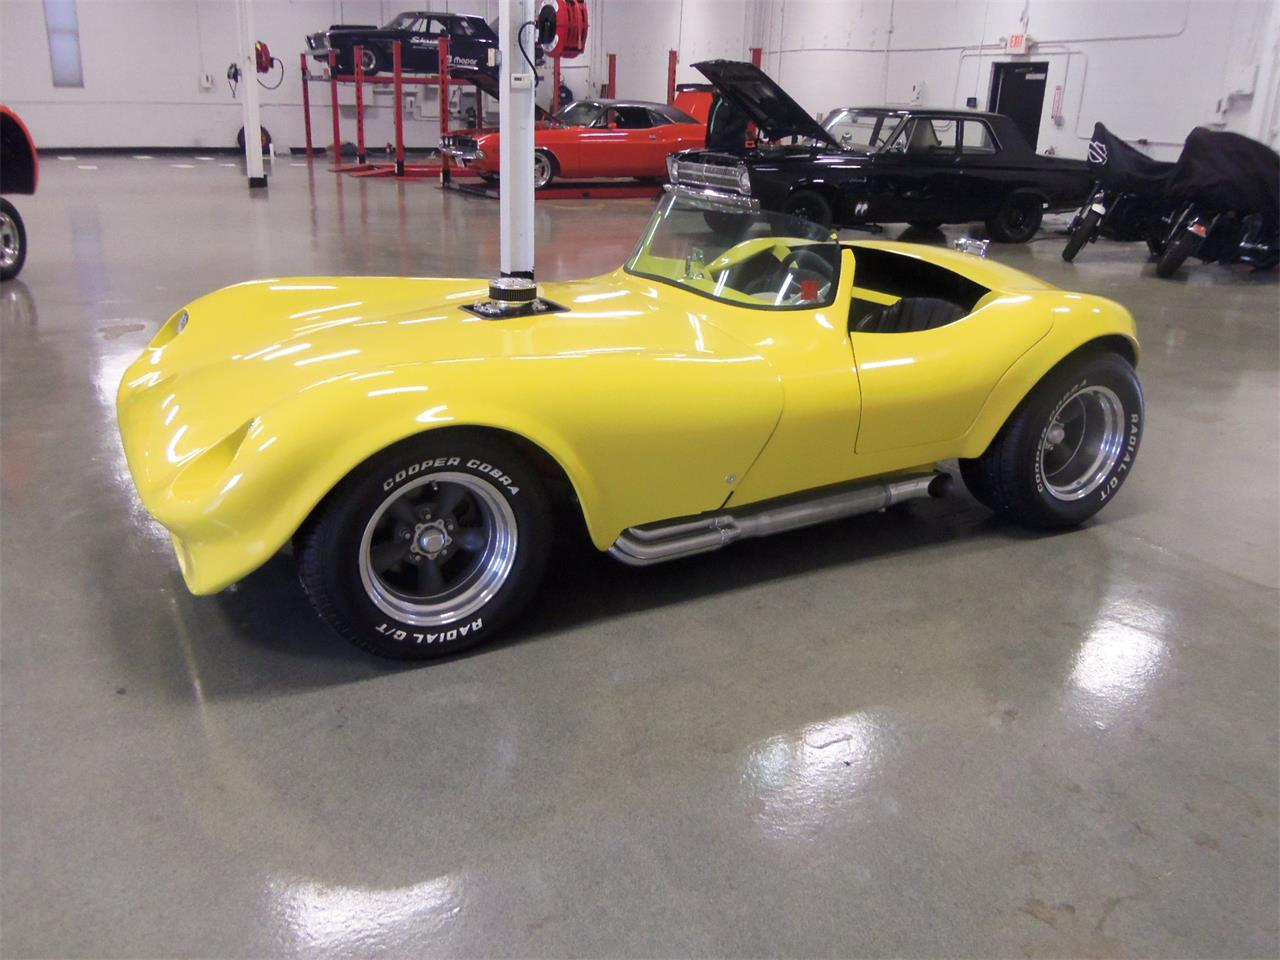 2017 Cheetah Race Car (CC-1253822) for sale in Bedford Hts., Ohio